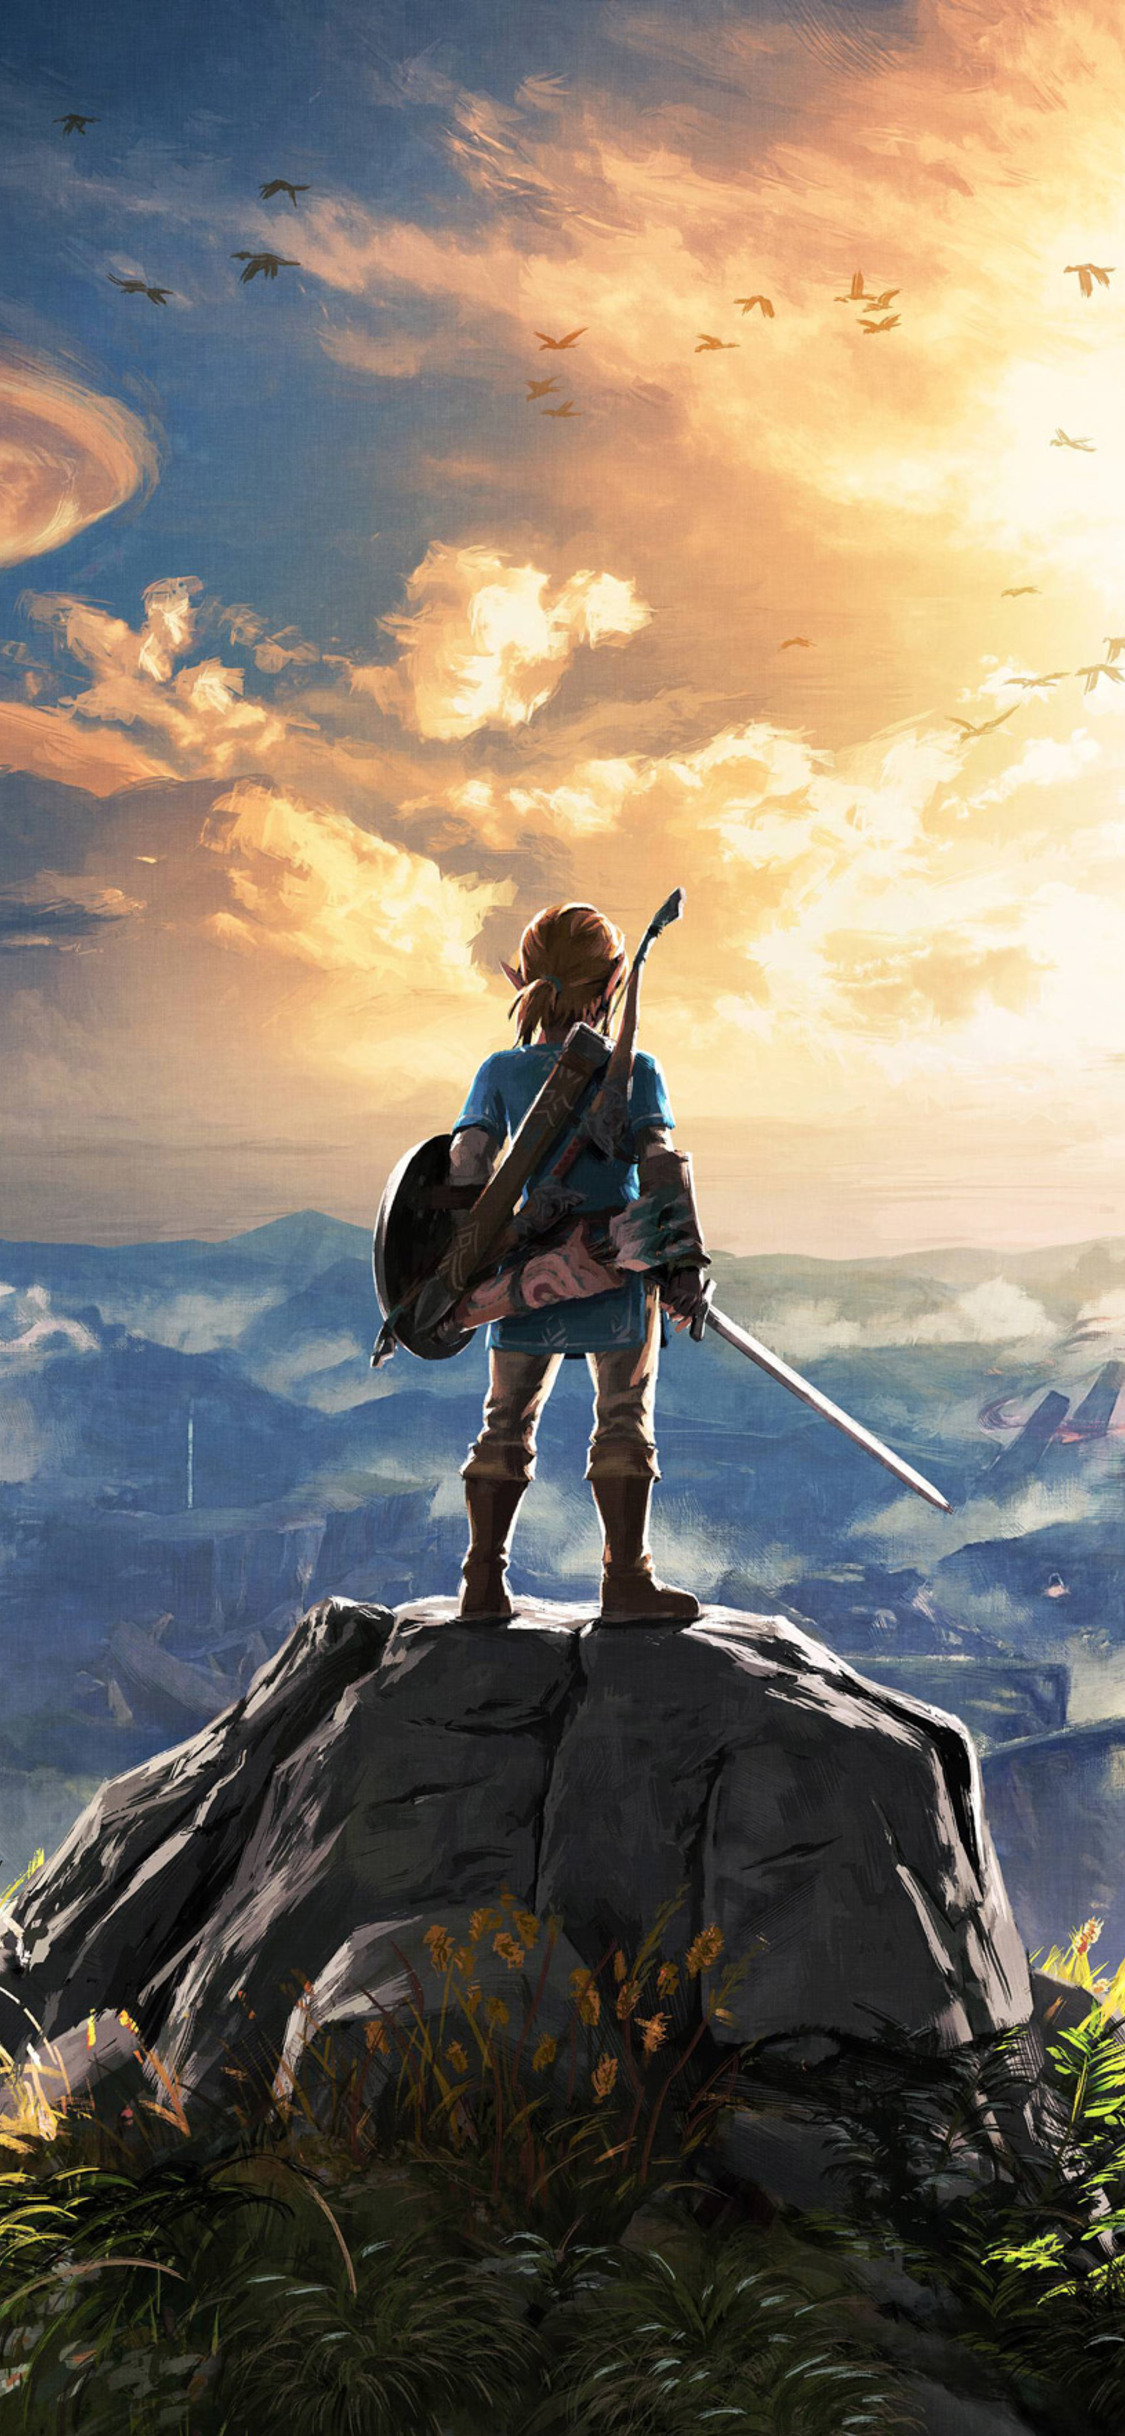 The Legend Of Zelda Breath Of The Wild 4k - Iphone X Wallpaper 4k , HD Wallpaper & Backgrounds